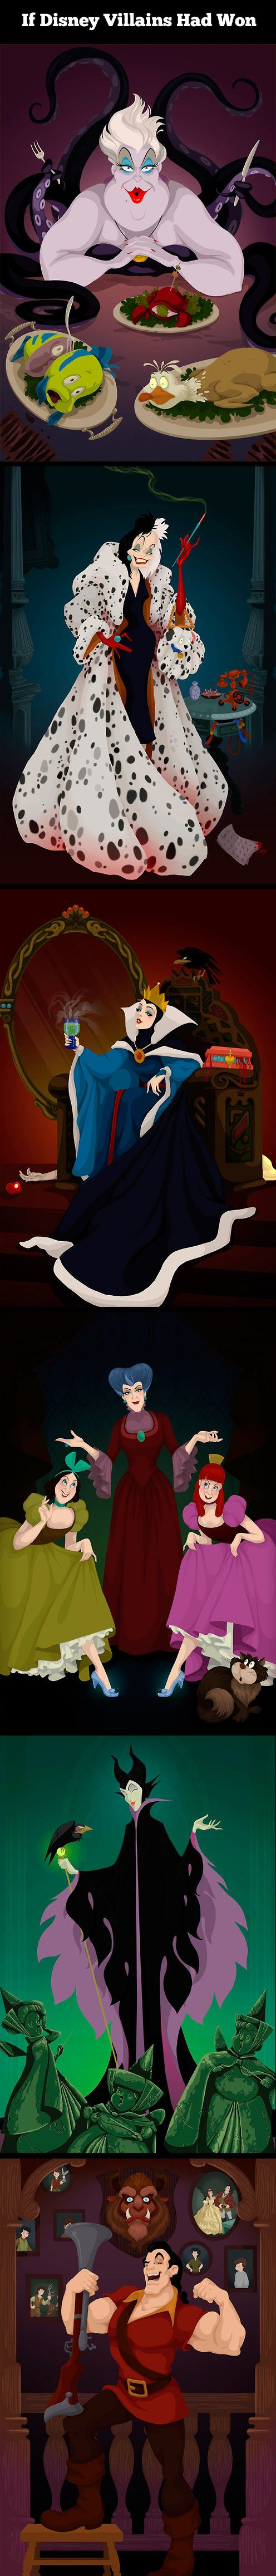 If Disney Villains Had Won in the End – 6 Pictures